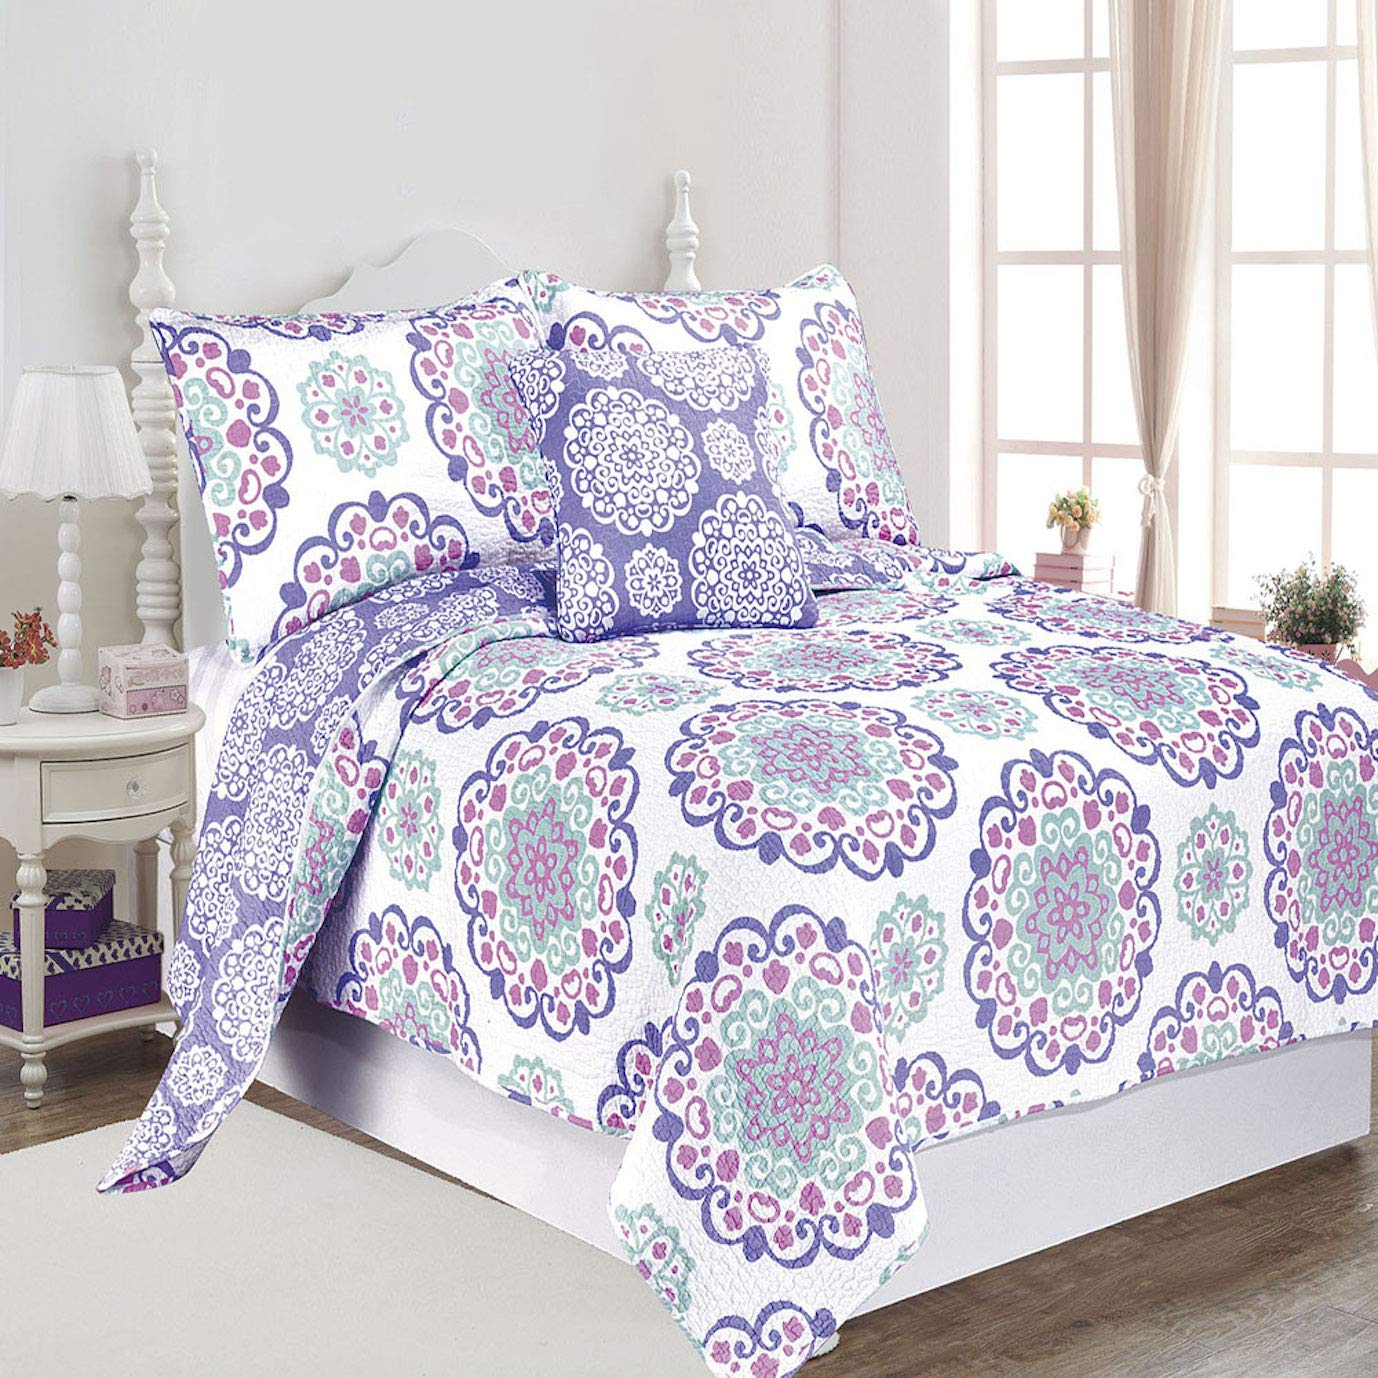 O3 DESIGN STUDIO QLTSETWDEC04-PPL Design Studio 3 Piece Vivian 3pc Cotton Quilt Set Twin, Purple